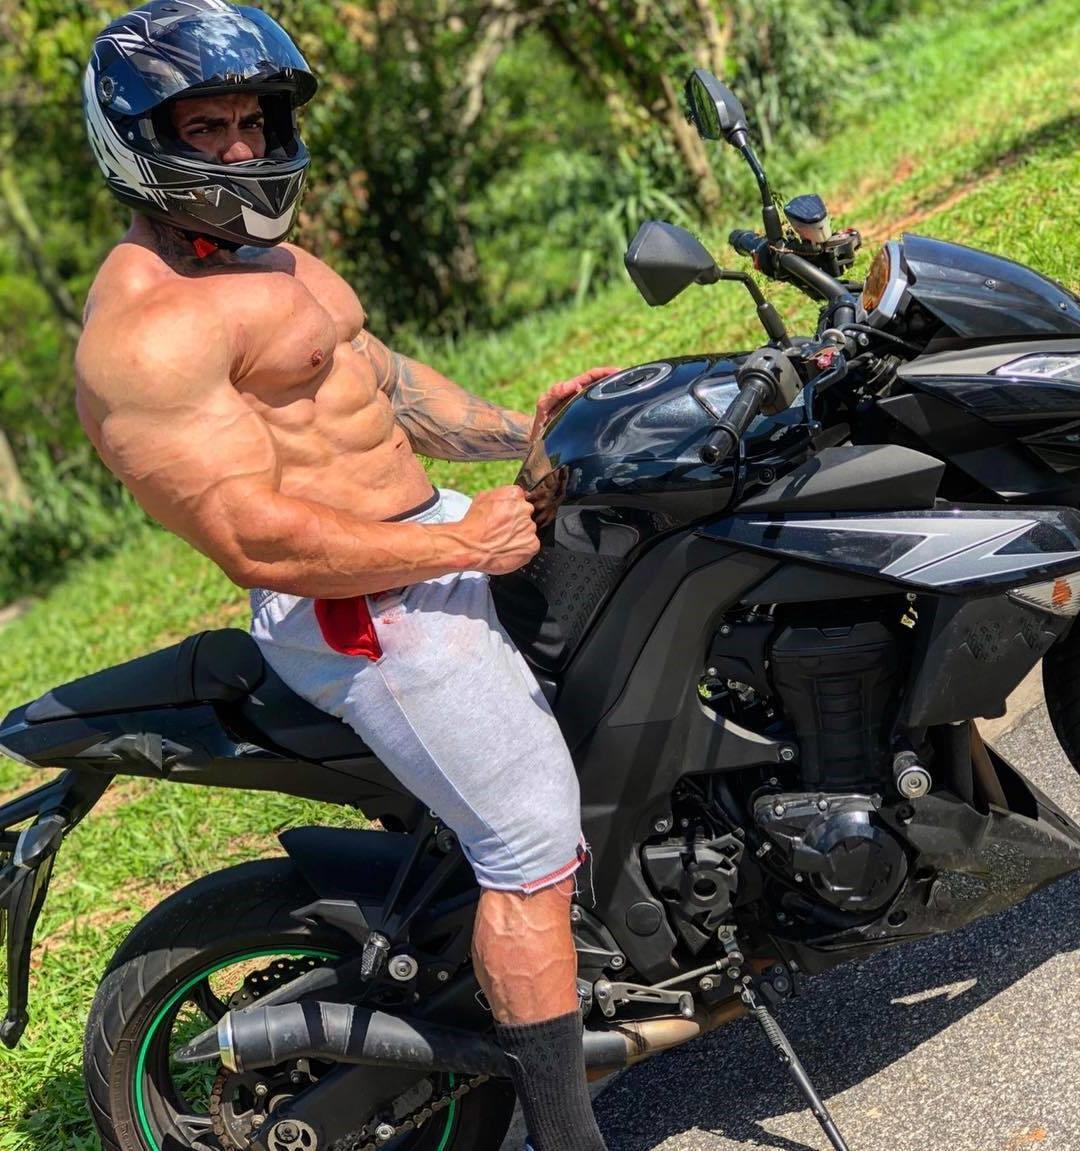 huge-swole-muscular-man-motorcycle-strong-veiny-shirtless-body-straight-sexy-daddy